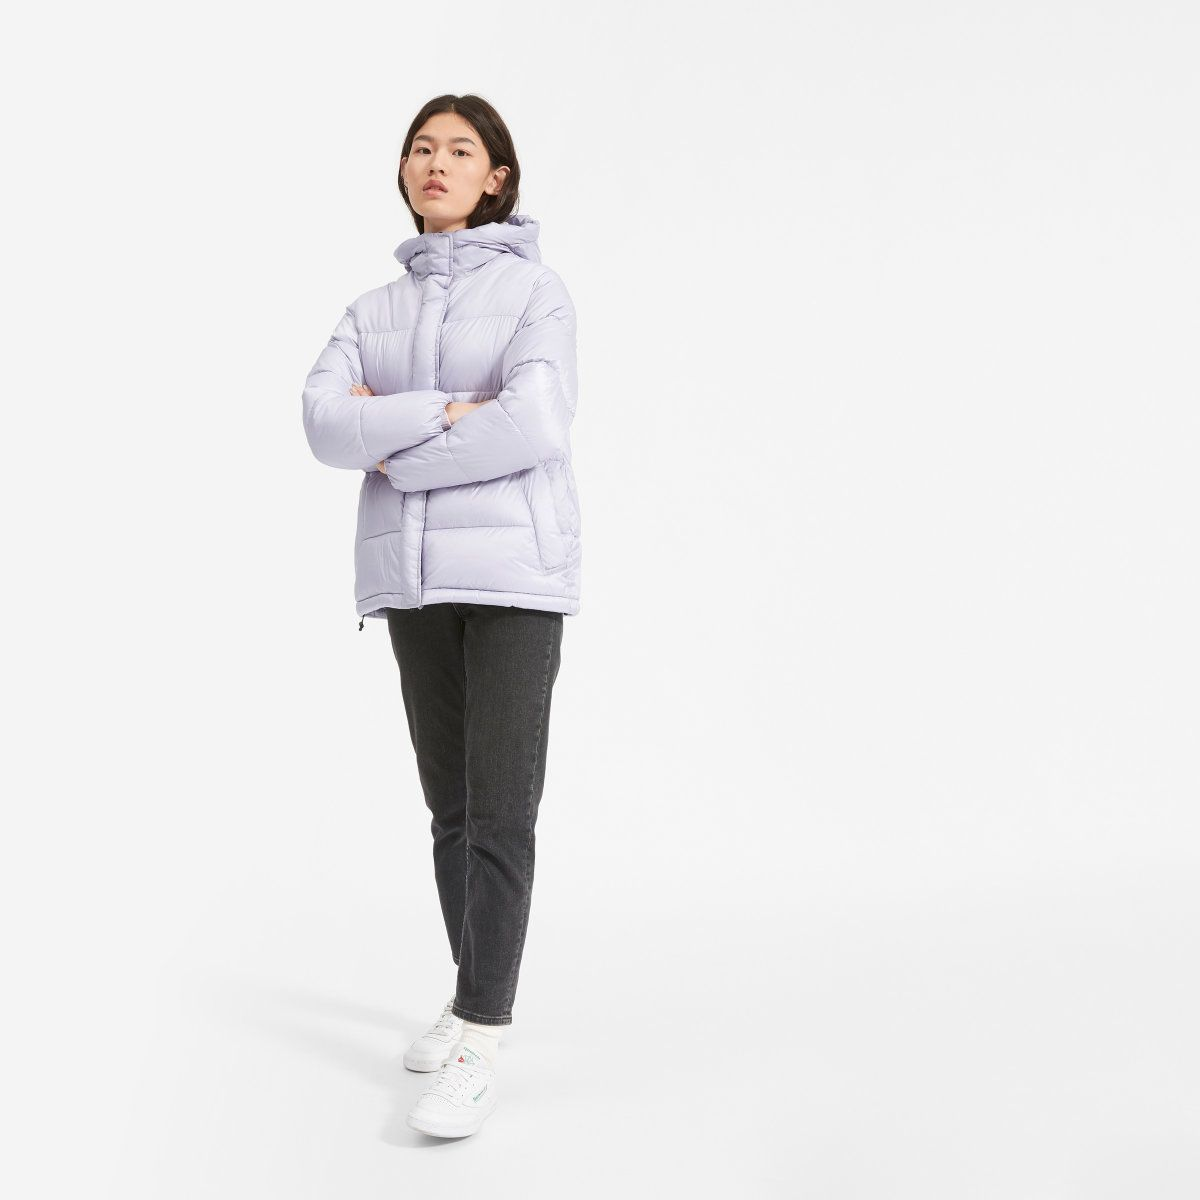 The Best Ethical Sustainable And Warm Coats For Winter Ecocult Affordable Winter Coats Red Puffer Jacket Affordable Coats [ 1200 x 1200 Pixel ]